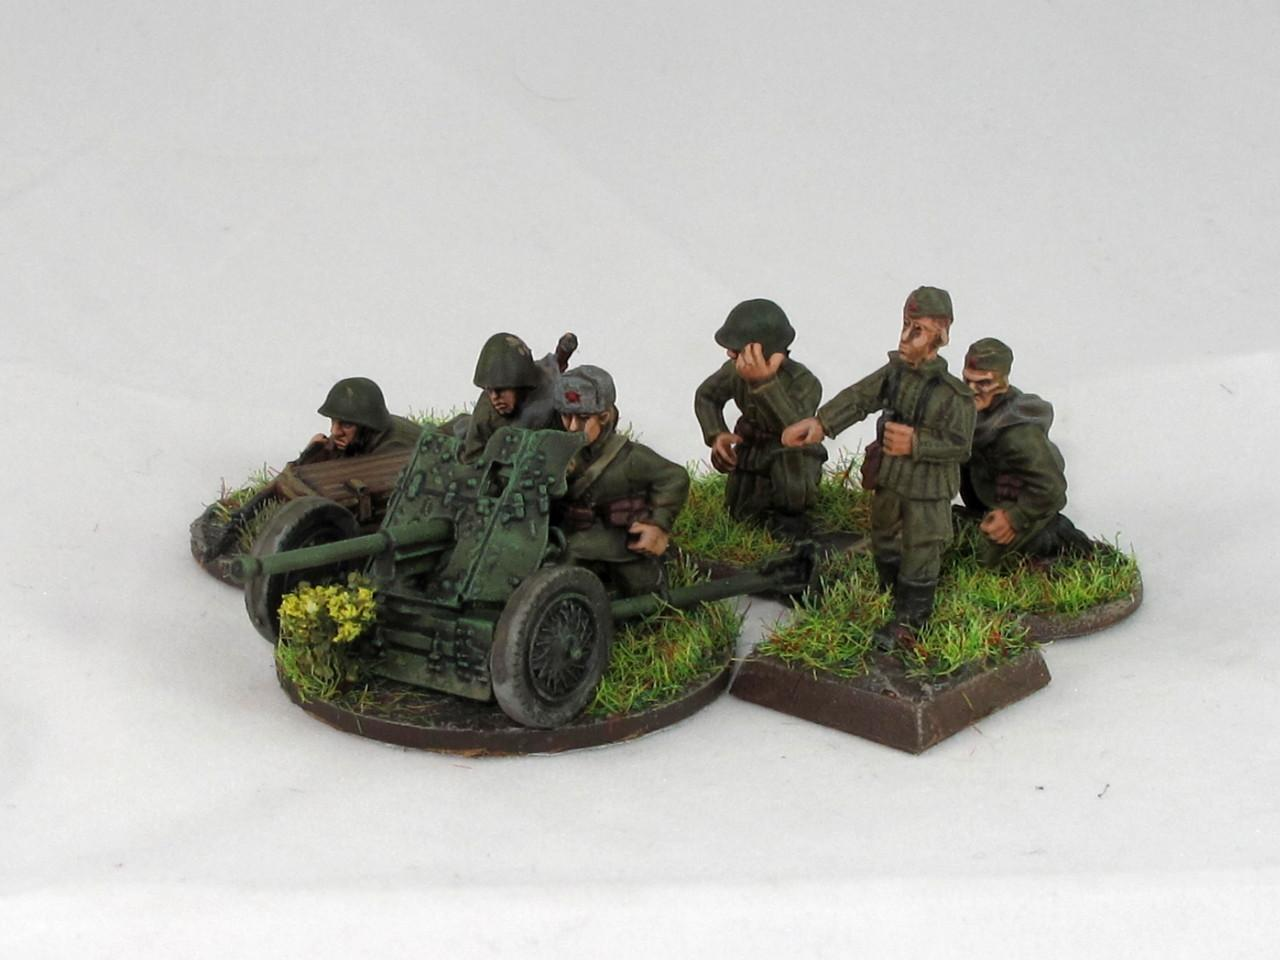 45mm Soviet AT Gun from Andy Duffell